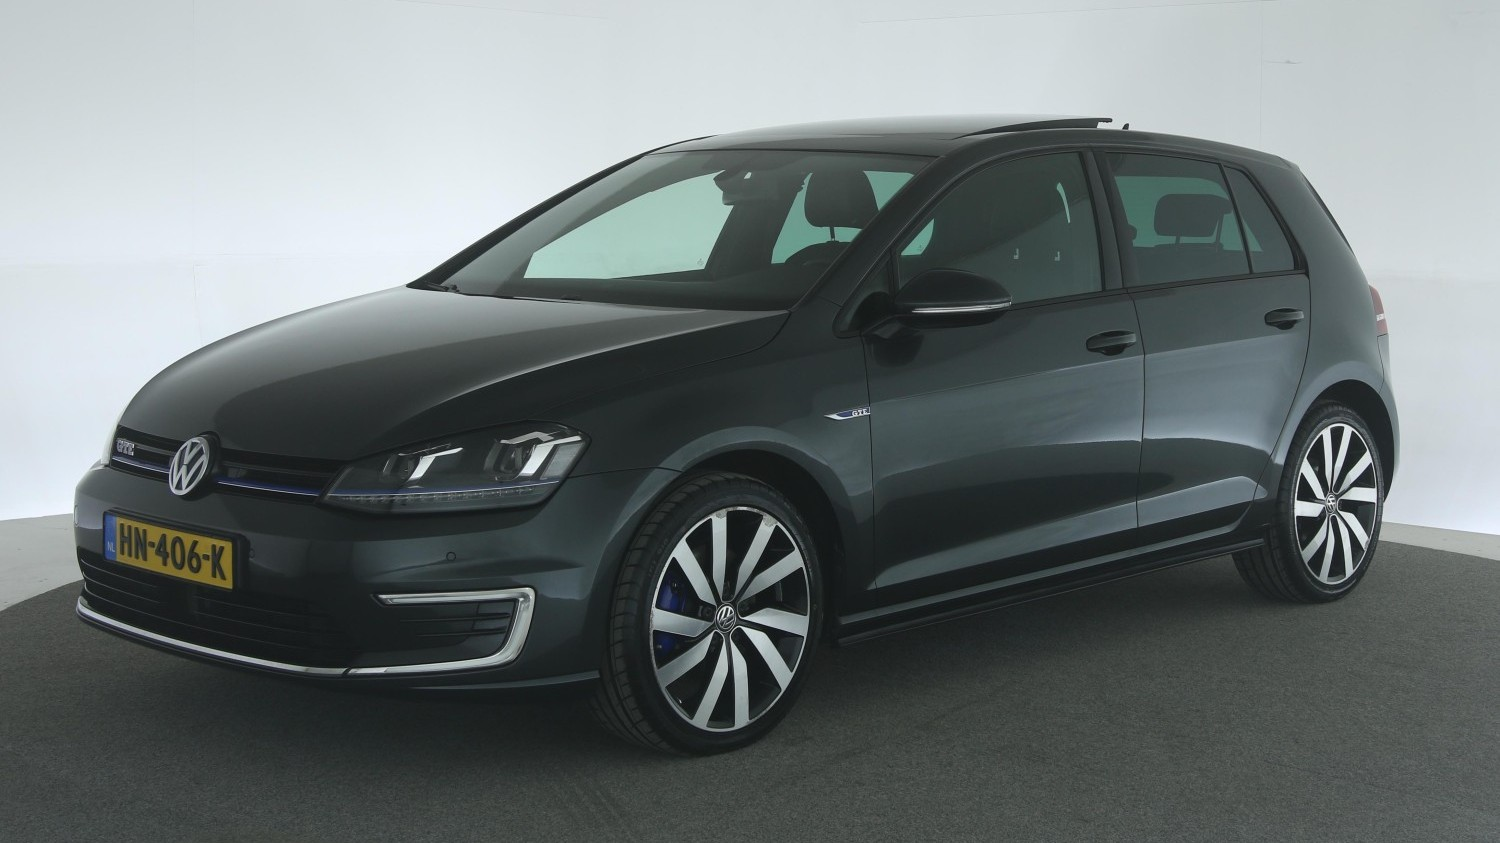 Volkswagen Golf Hatchback 2015 HN-406-K 1